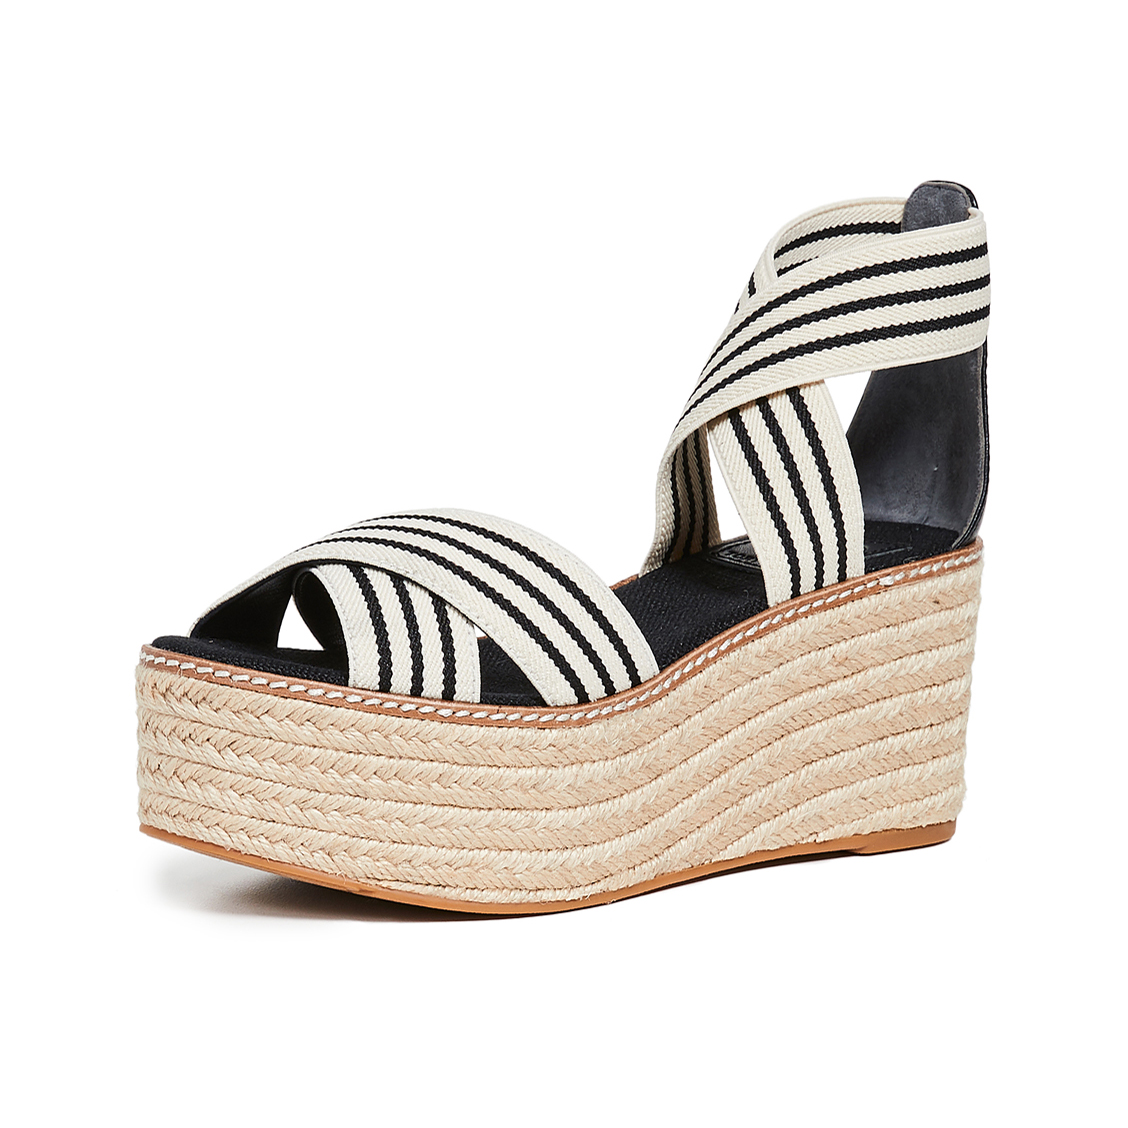 677fa67b7ce Details about Tory Burch Women s Frieda Black White Strappy Woven Espadrilles  Wedge Platforms